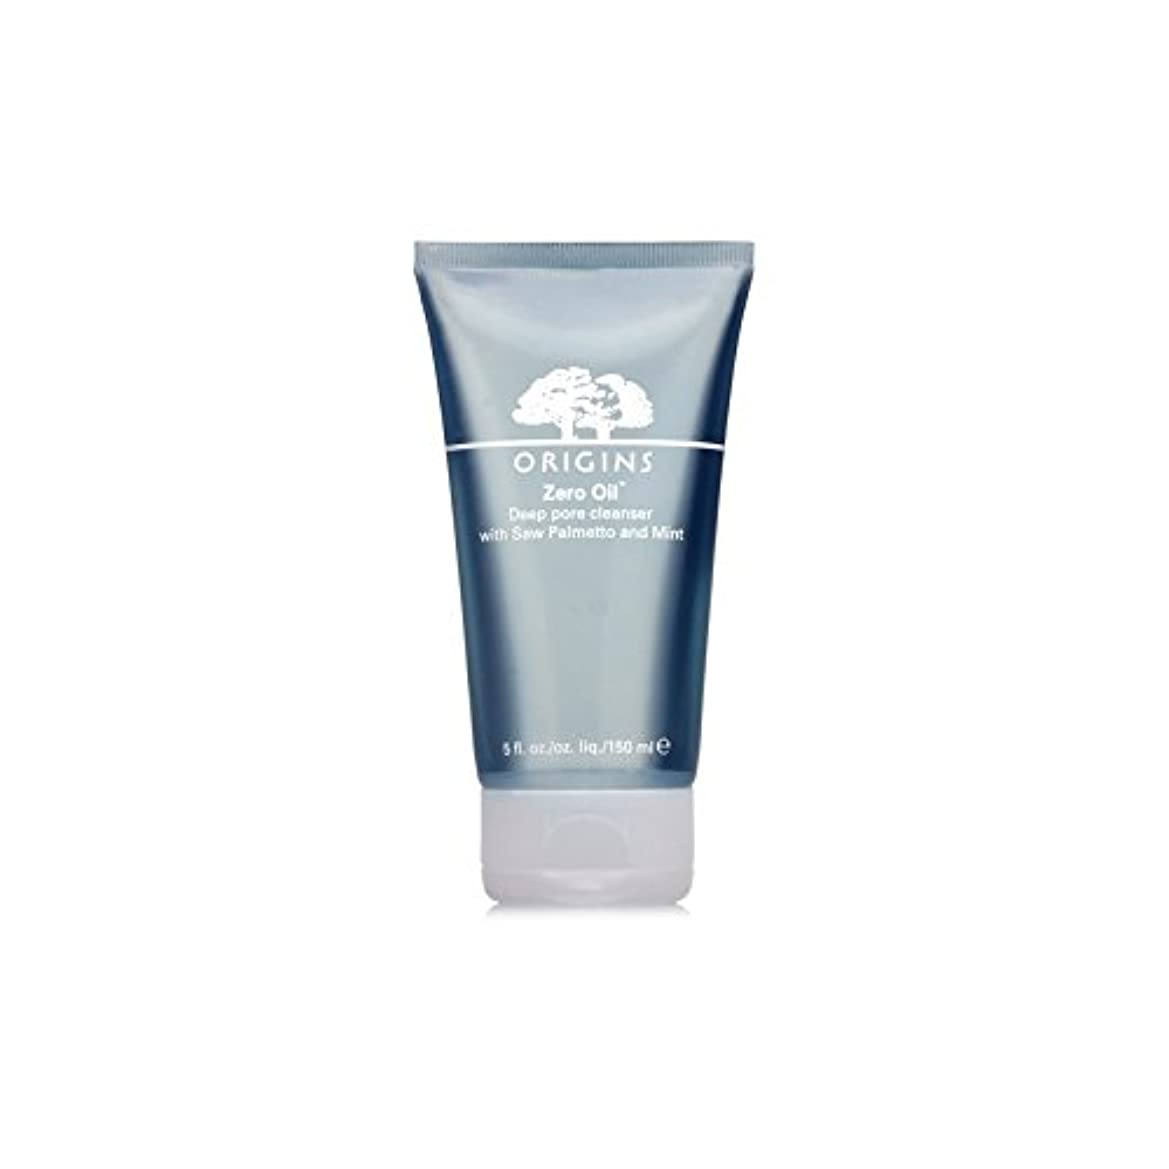 Origins Zero Oil Deep Pore Cleanser With Saw Palmetto & Mint 150ml (Pack of 6) - ノコギリヤシ&ミント150ミリリットルとの起源ゼロ油深いポアクレンザー...